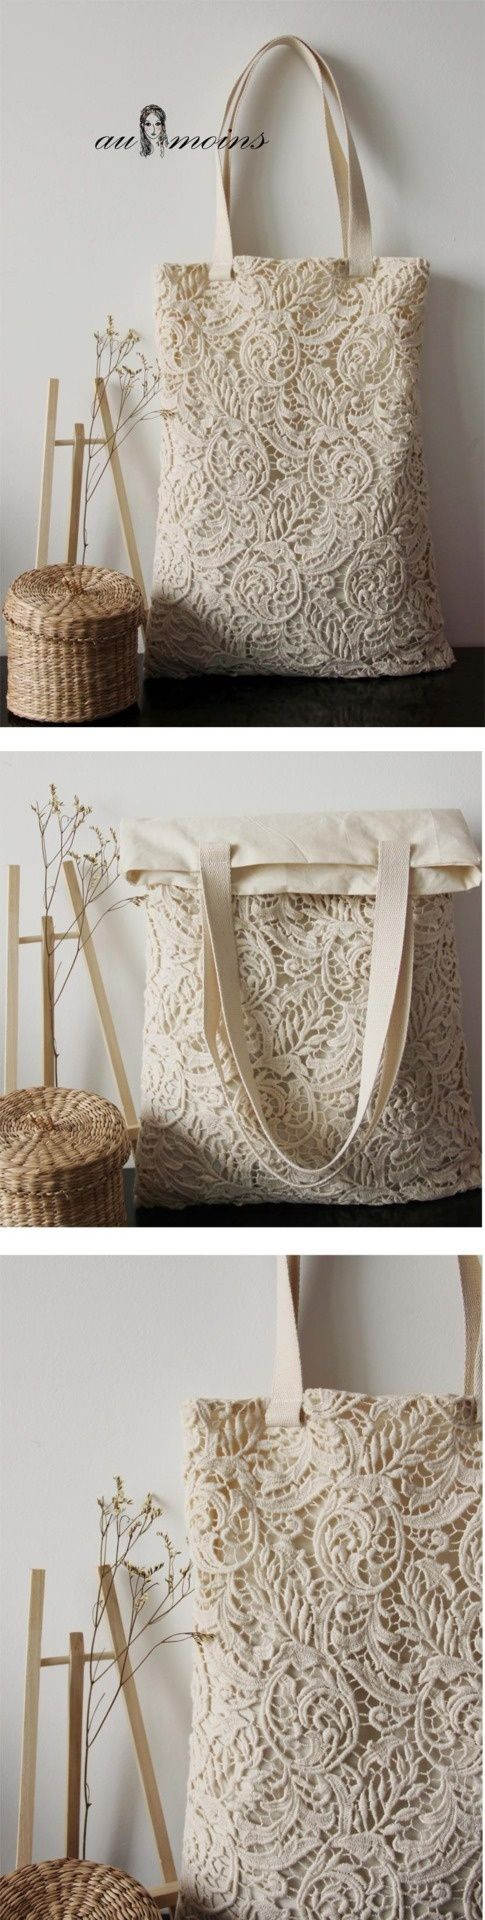 This lace tote could be a fantastic DIY idea. Maybe reclaim an old ...